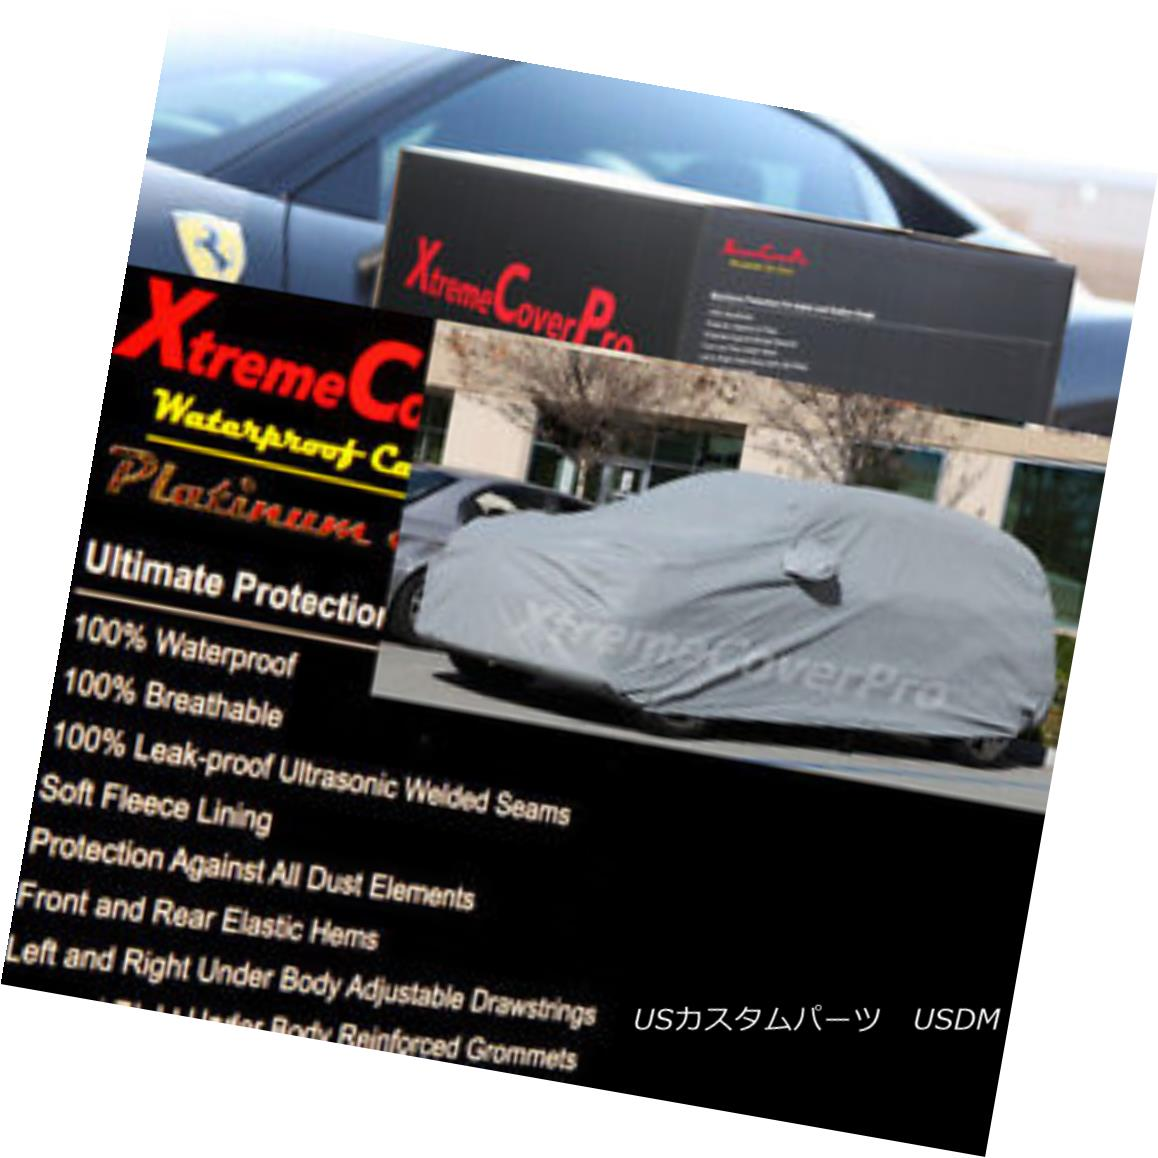 カーカバー 2015 TOYOTA LAND CRUISER Waterproof Car Cover w/Mirror Pockets - Gray 2015 TOYOTA LAND CRUISERミラーポケット付き防水カーカバー - グレー